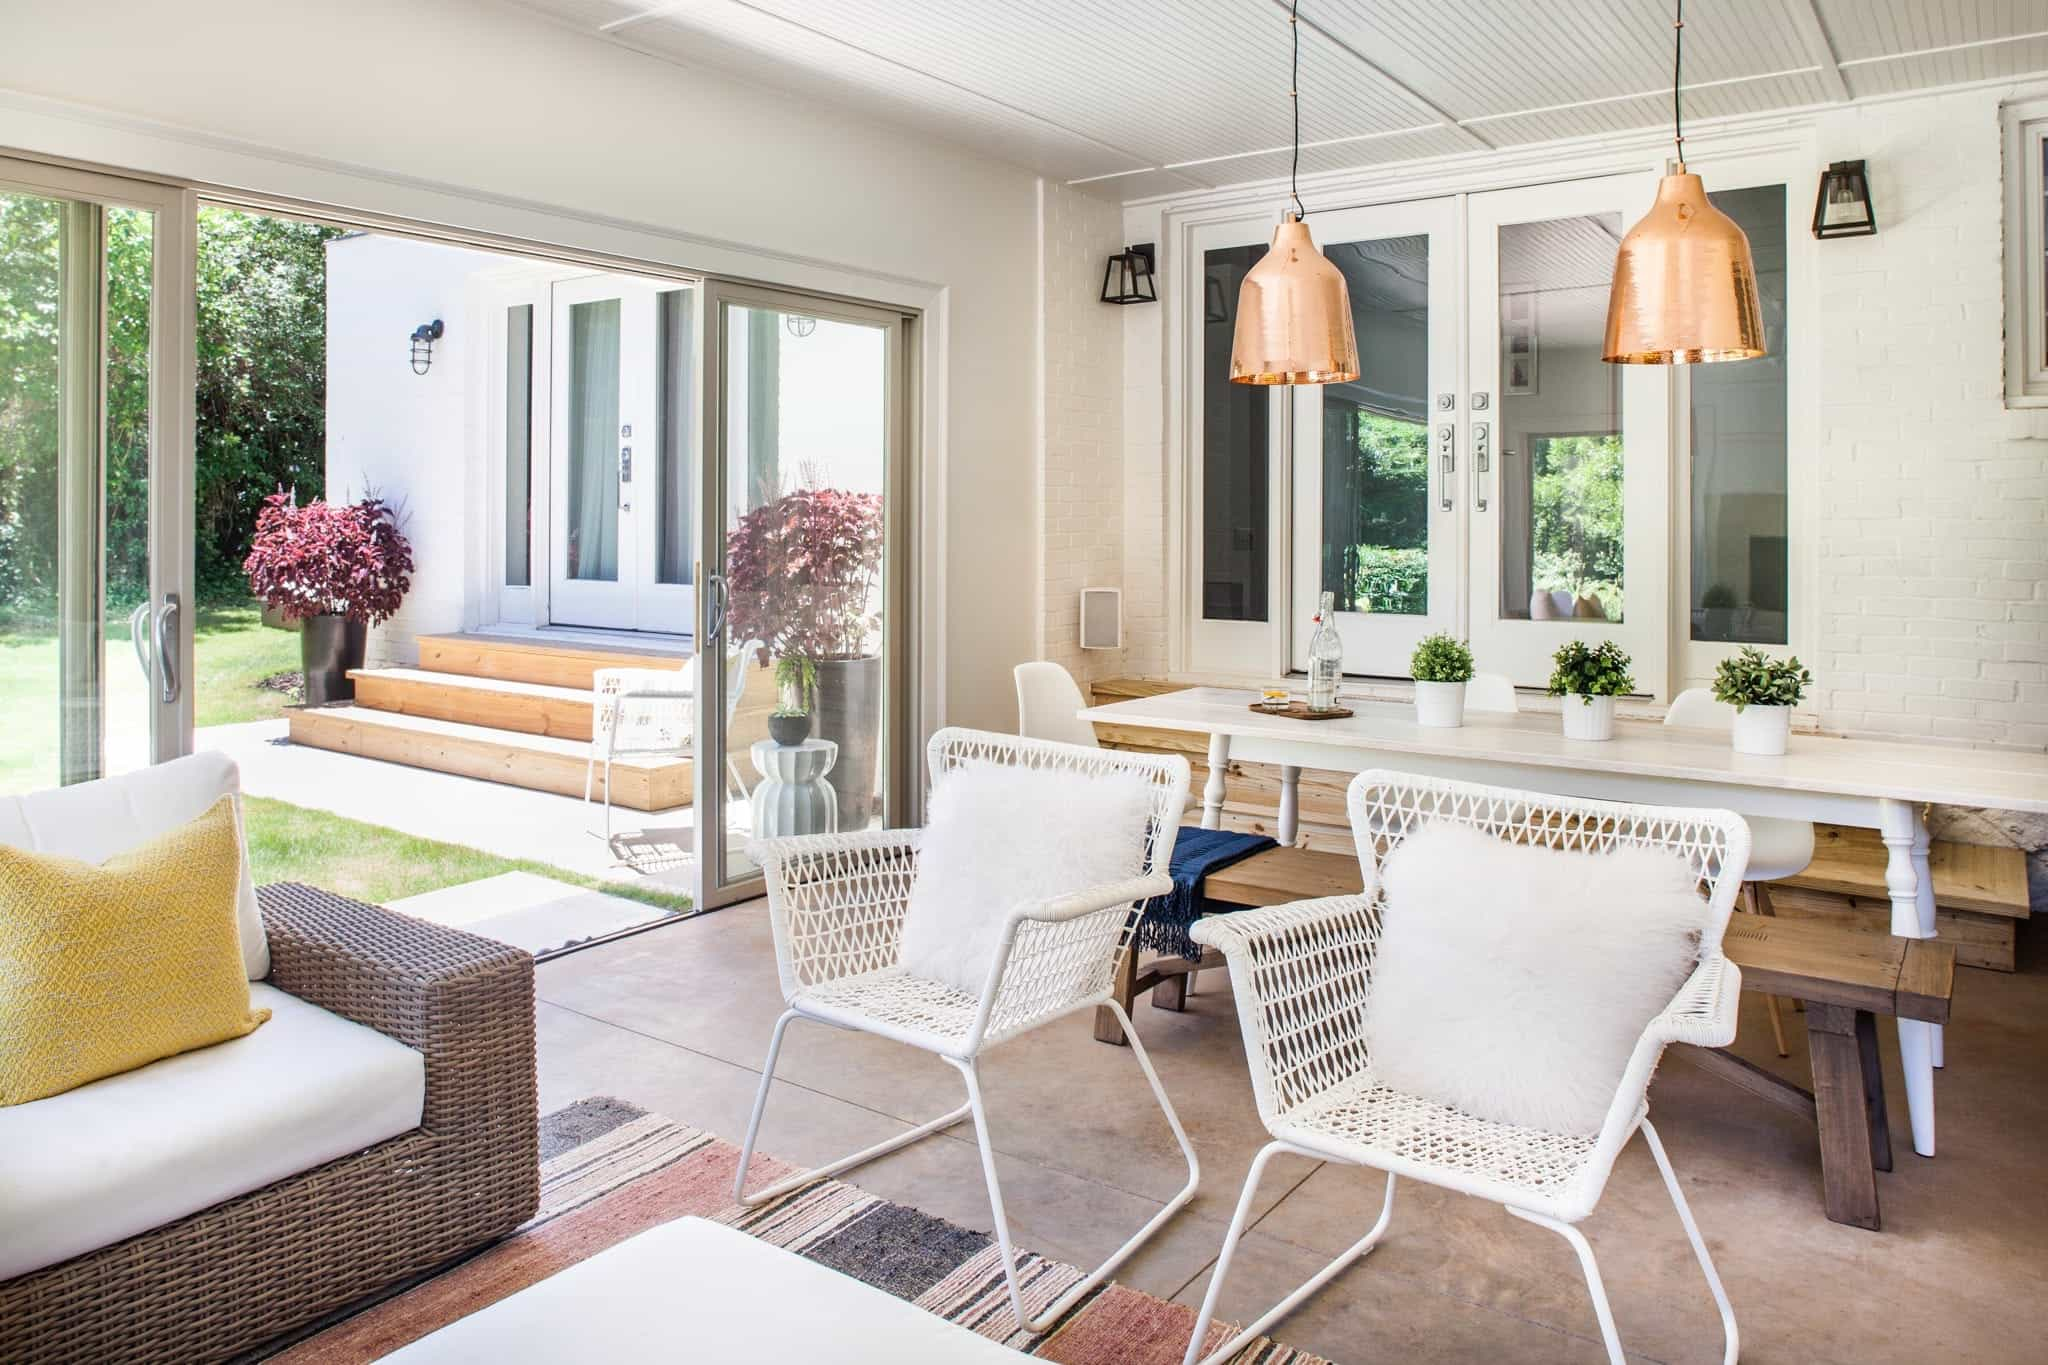 Featured Image of Outdoor Space With White Furniture And Sliding Glass Door